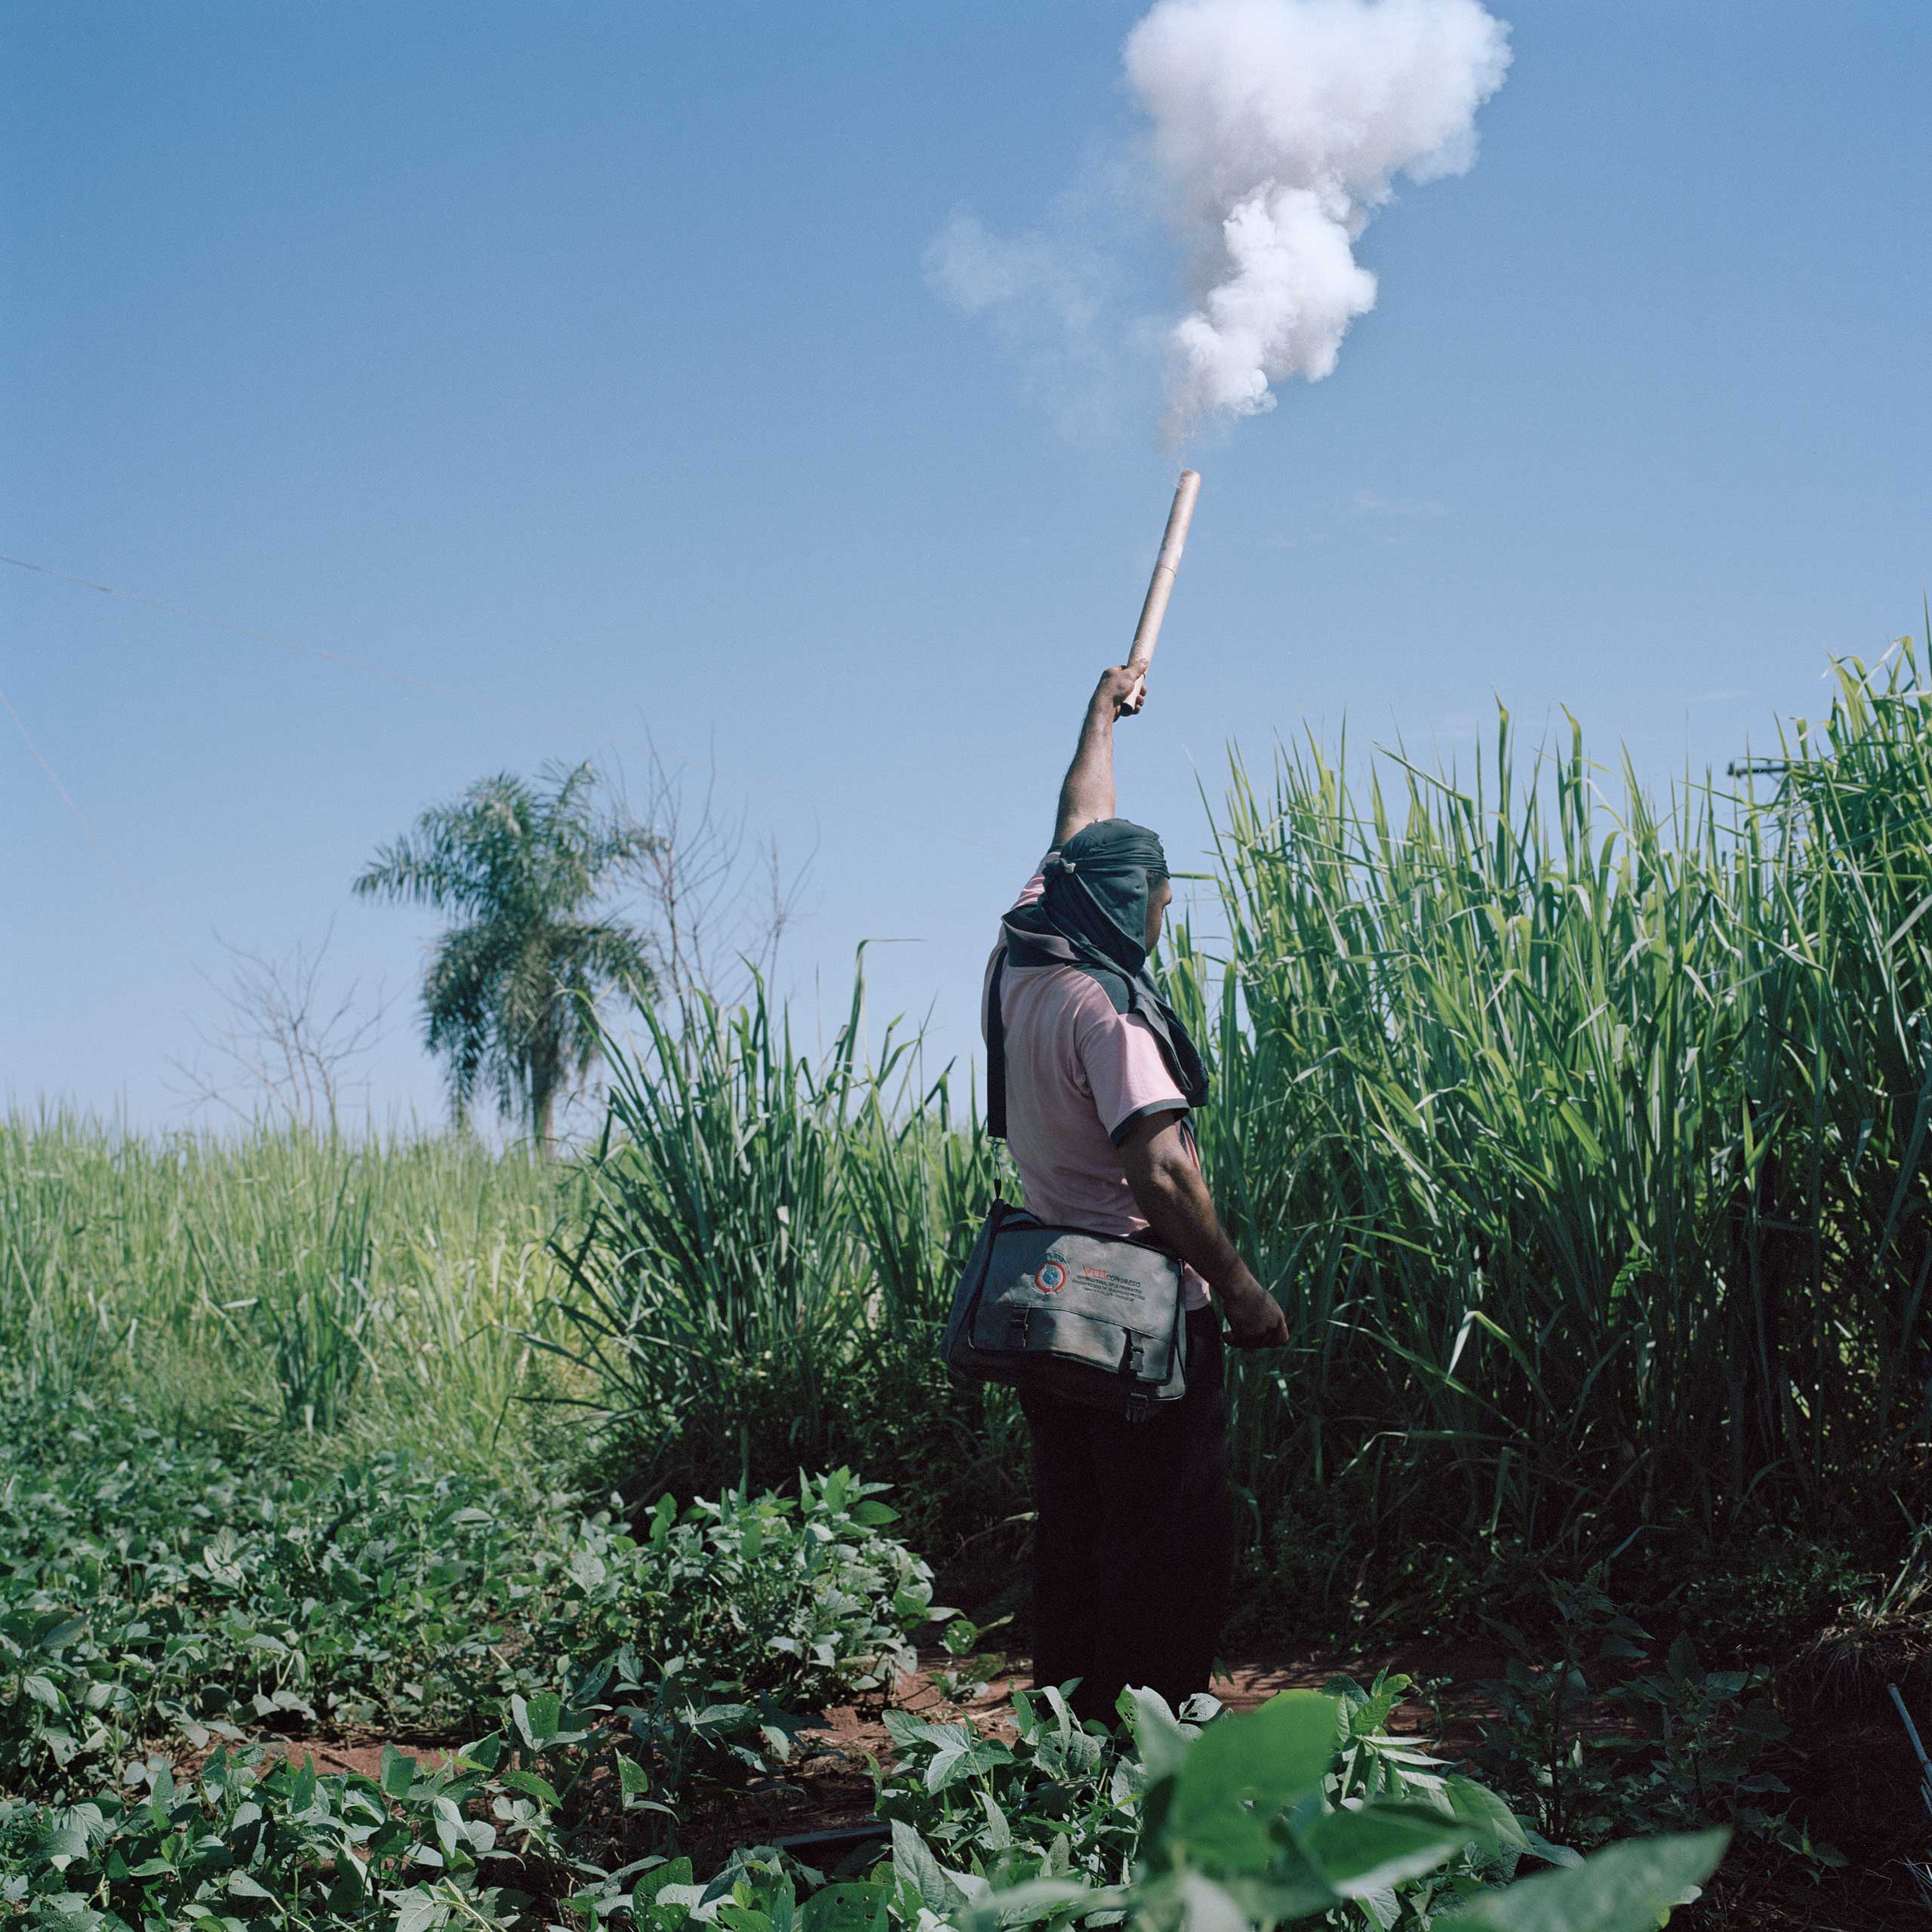 A peasant shoots a firecracker to alert people that a fumigation is happening near the community. In such situations, peasants occupy the soy field in order to stop the fumigation, which they believe to be harmful to the community's health and the environment.